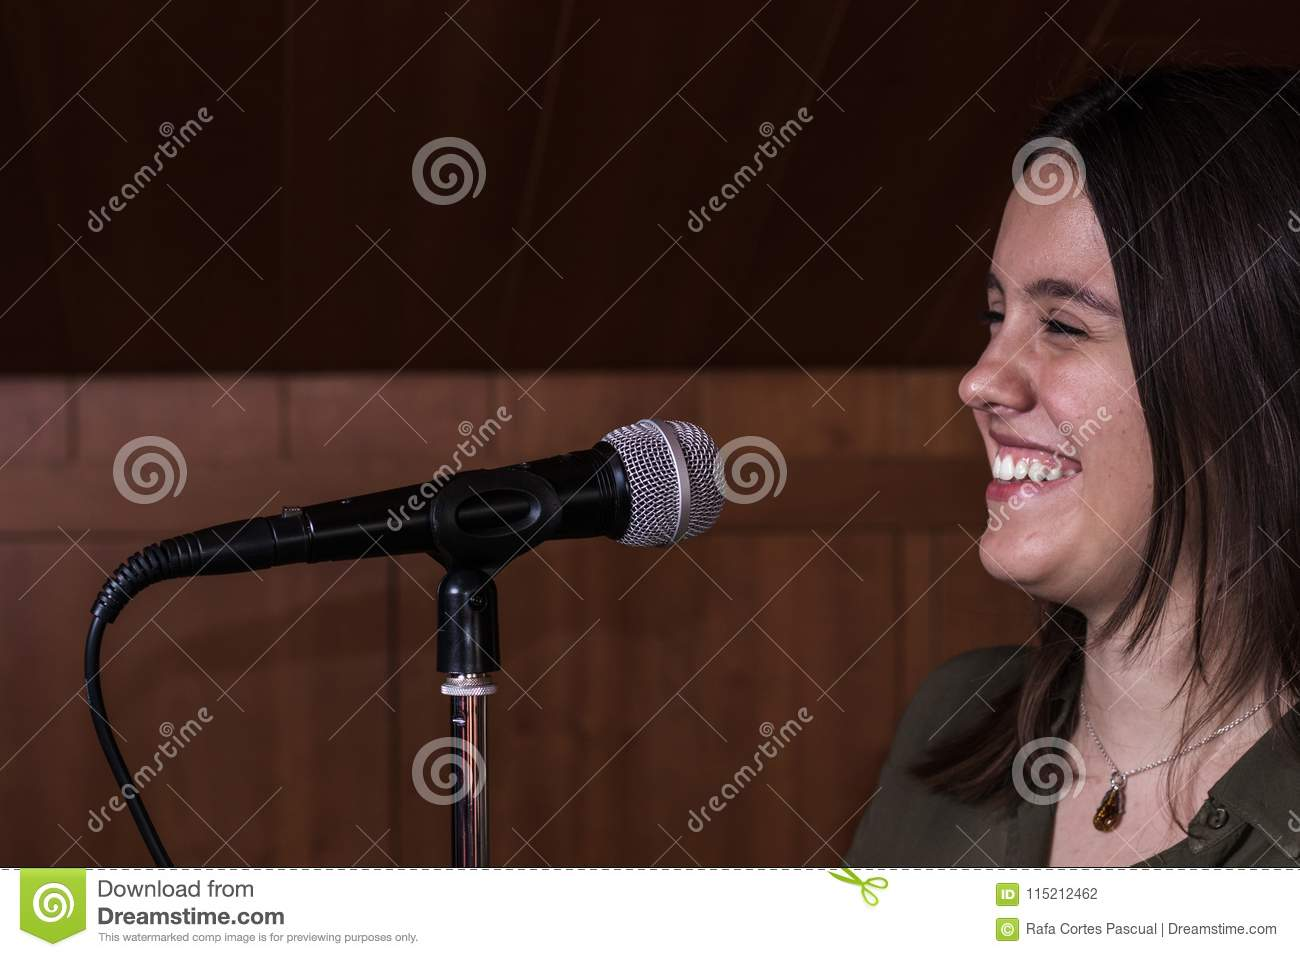 Girl singing with a microphone in a music studio